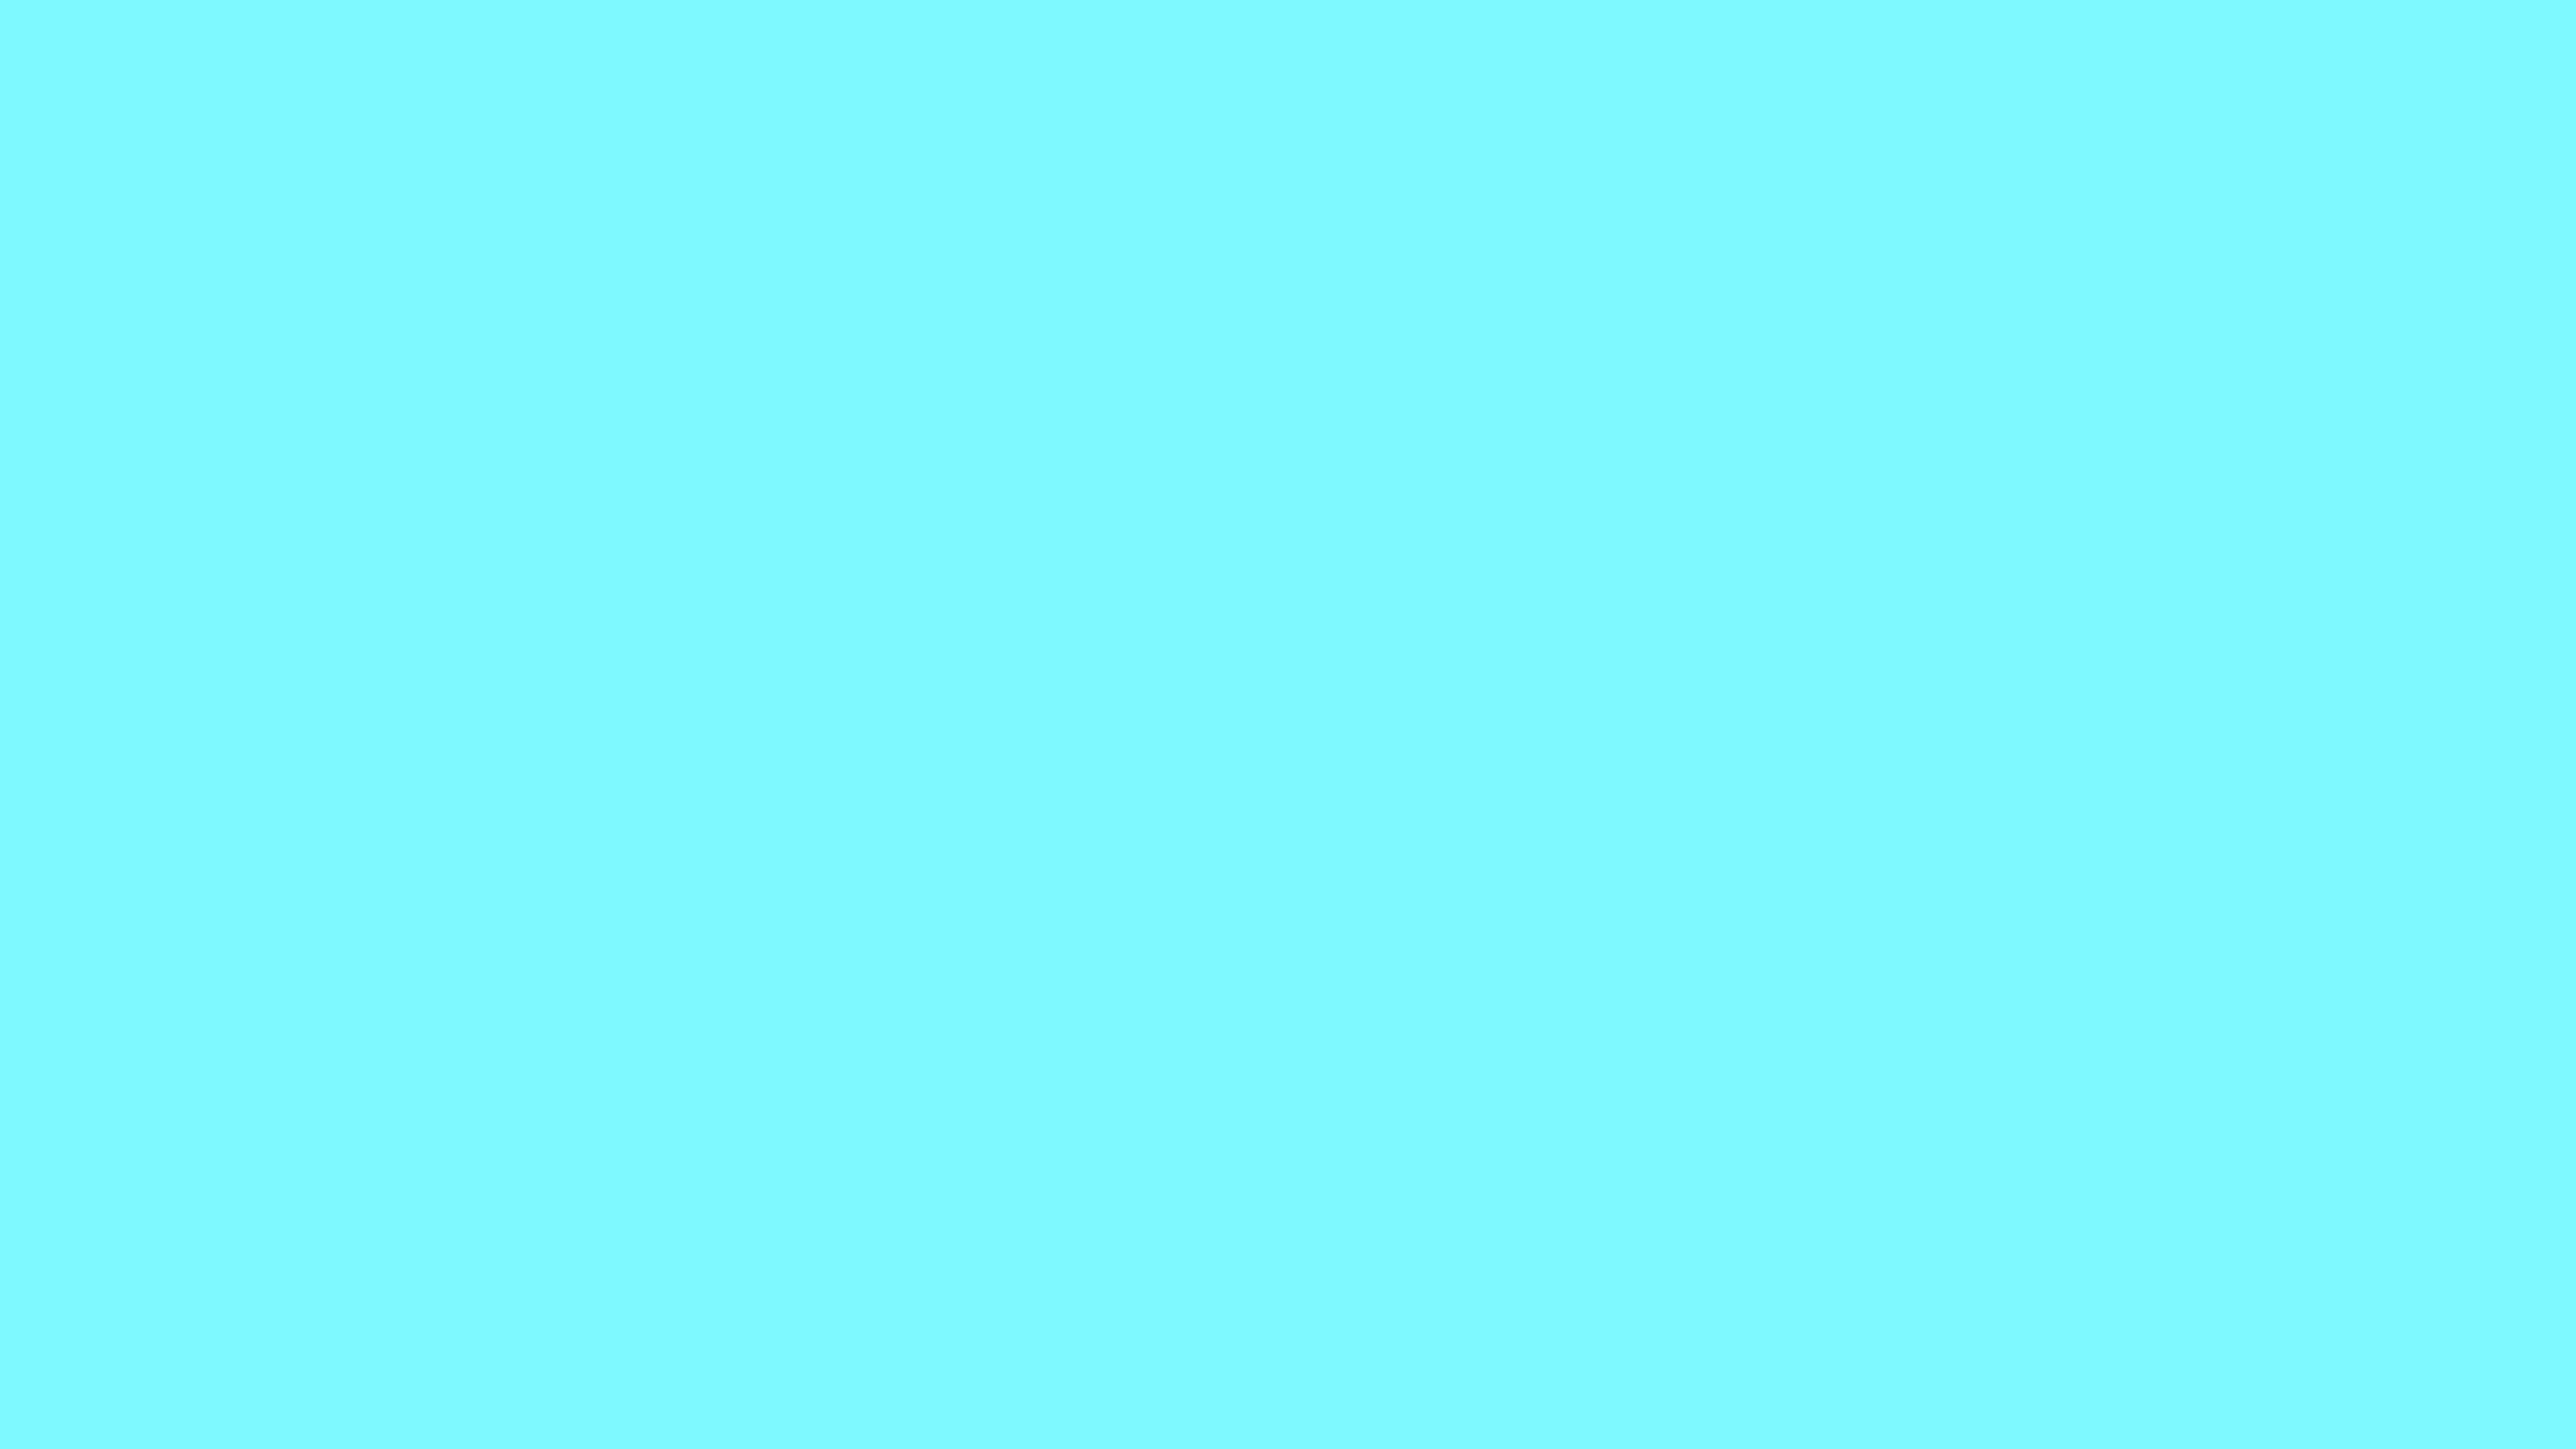 7680x4320 Electric Blue Solid Color Background